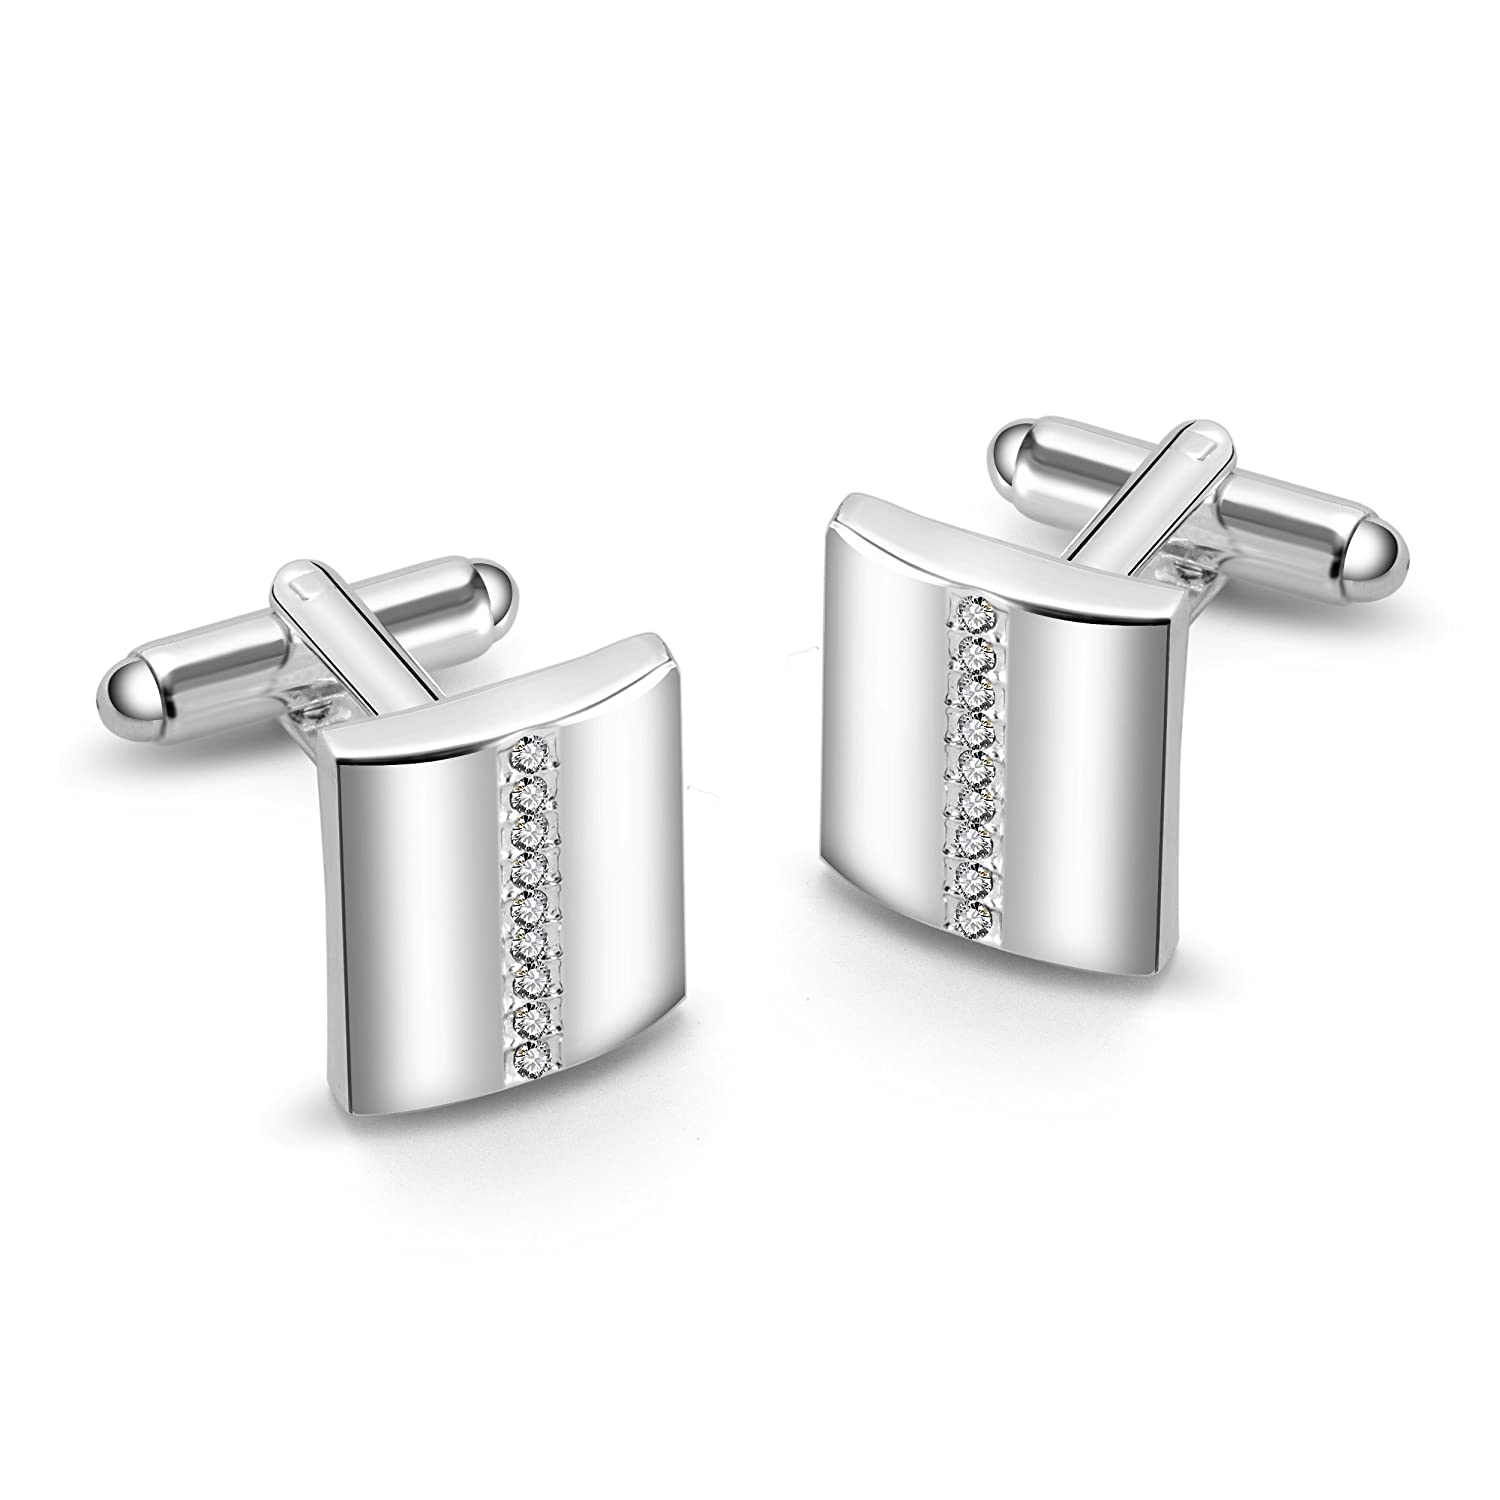 Silver Cufflinks Created with Austrian Crystals